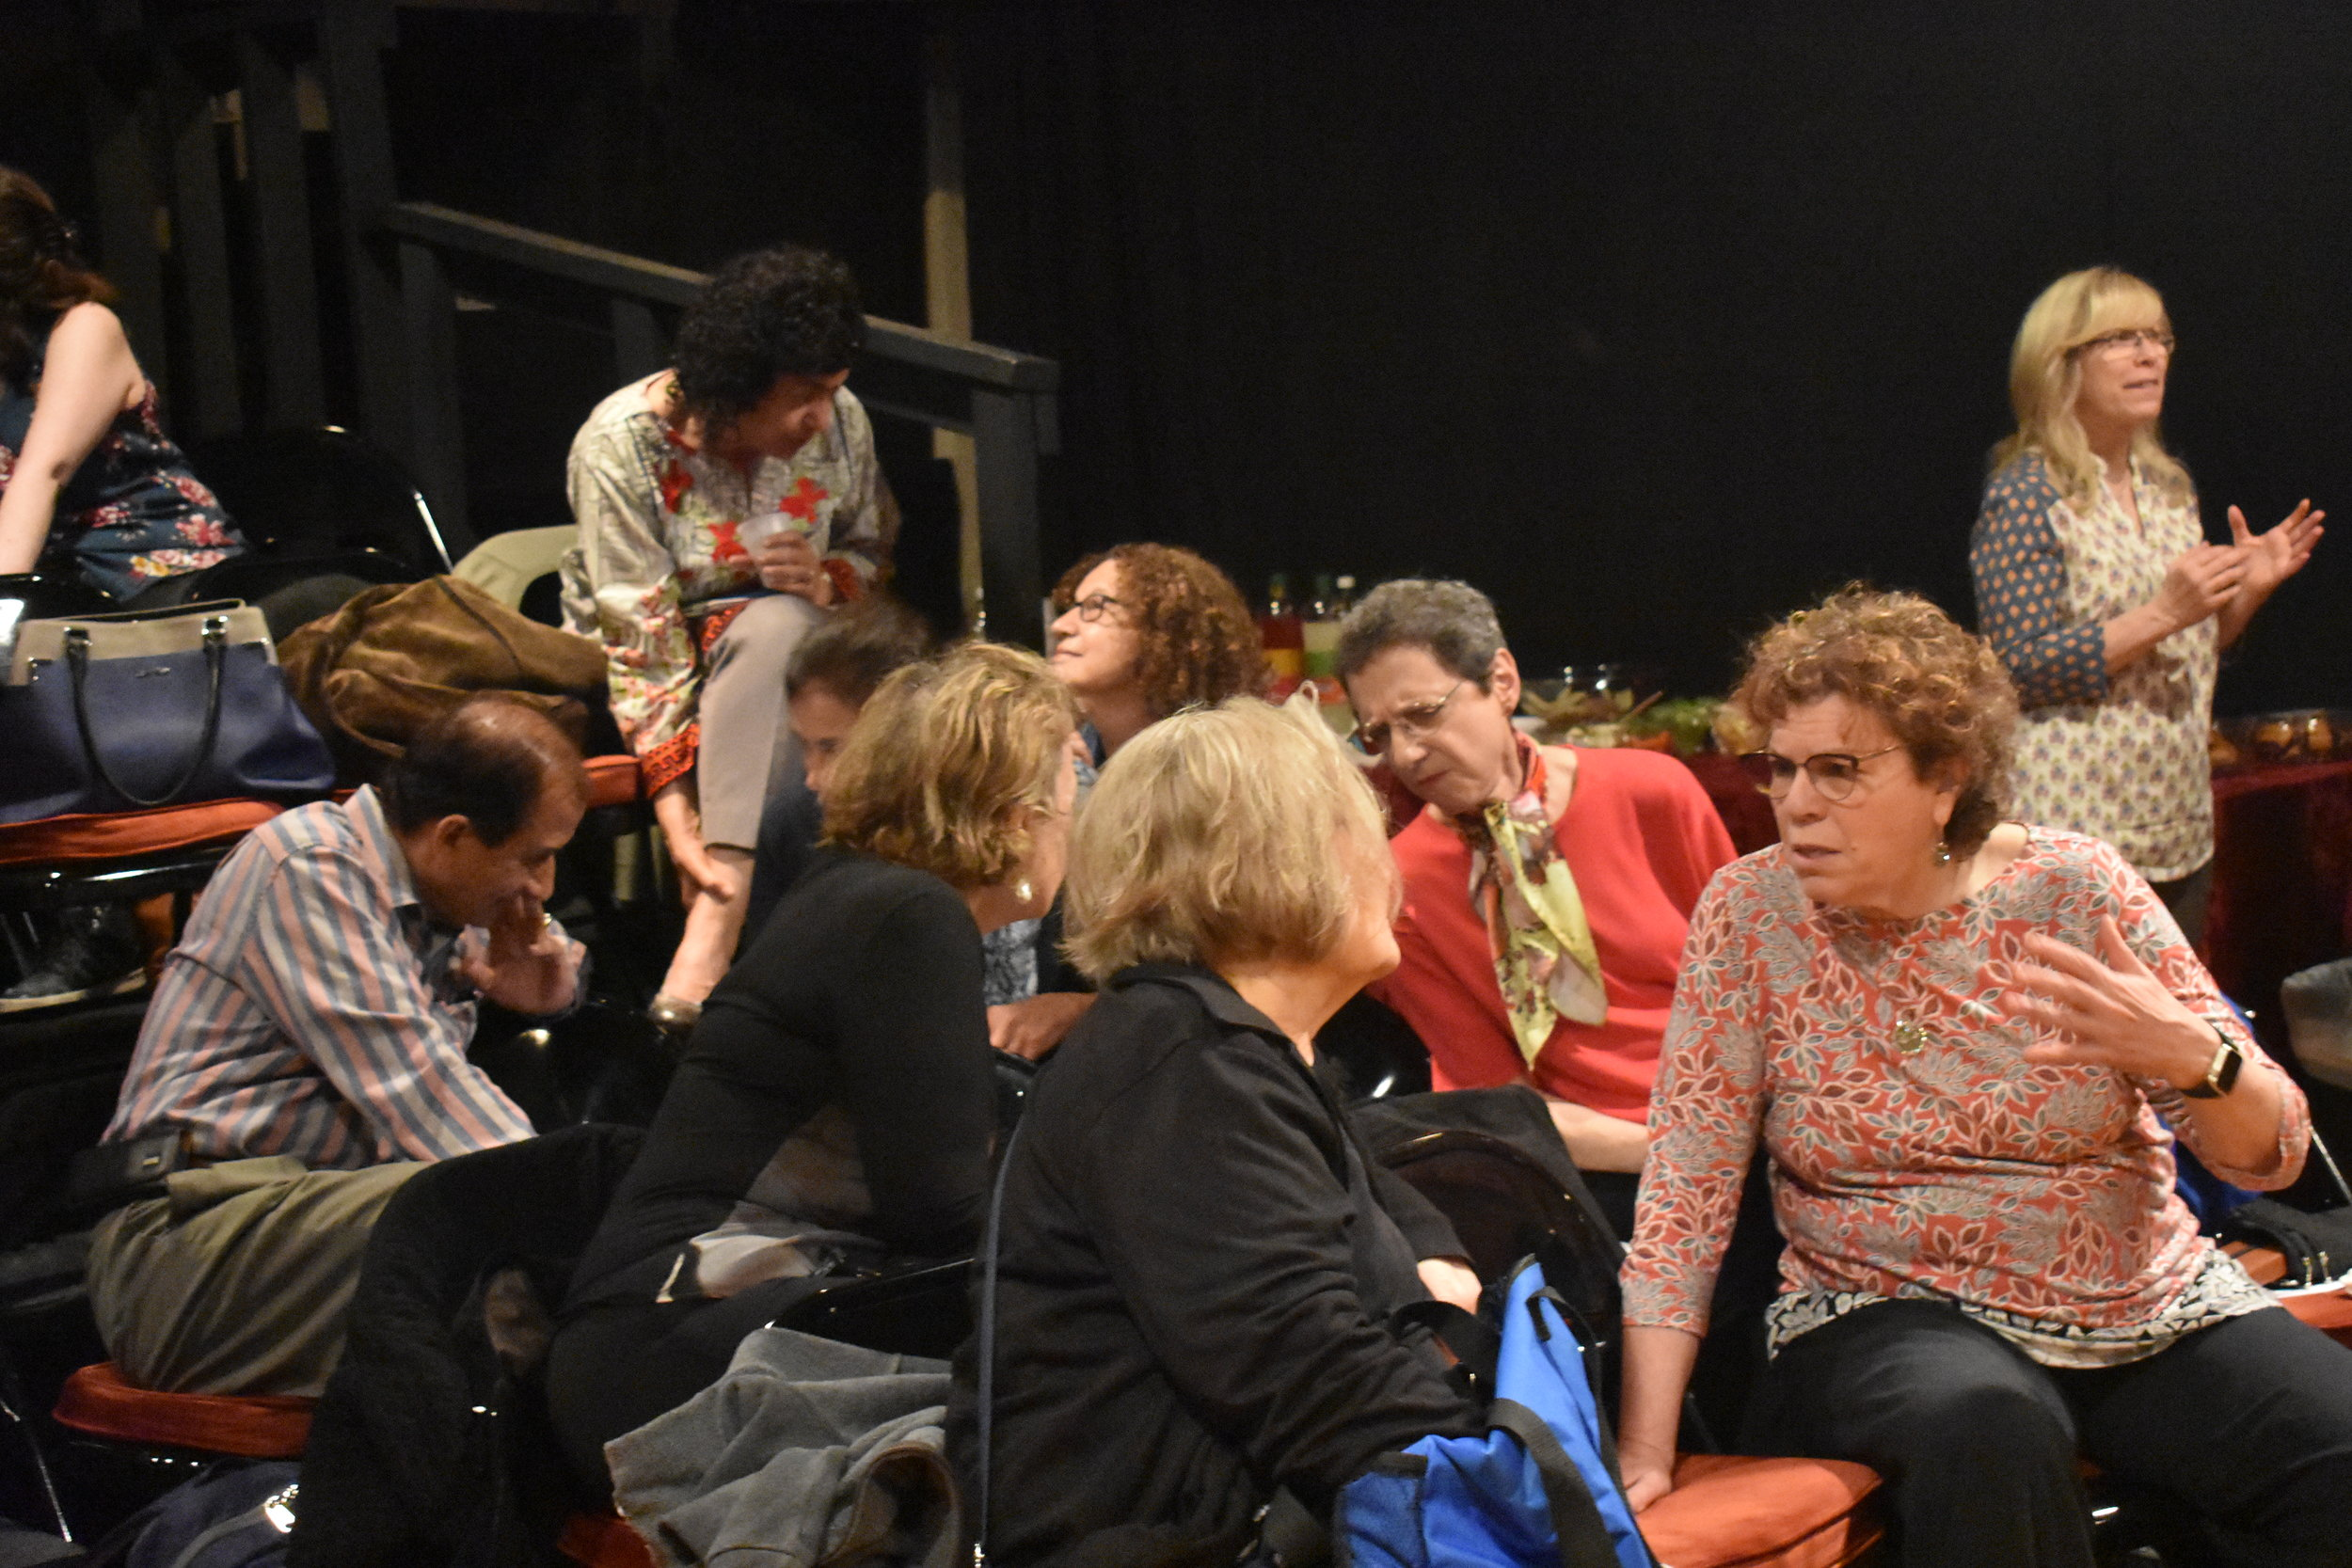 Audience members relating to the day and to each other! Photo by Mollie Block